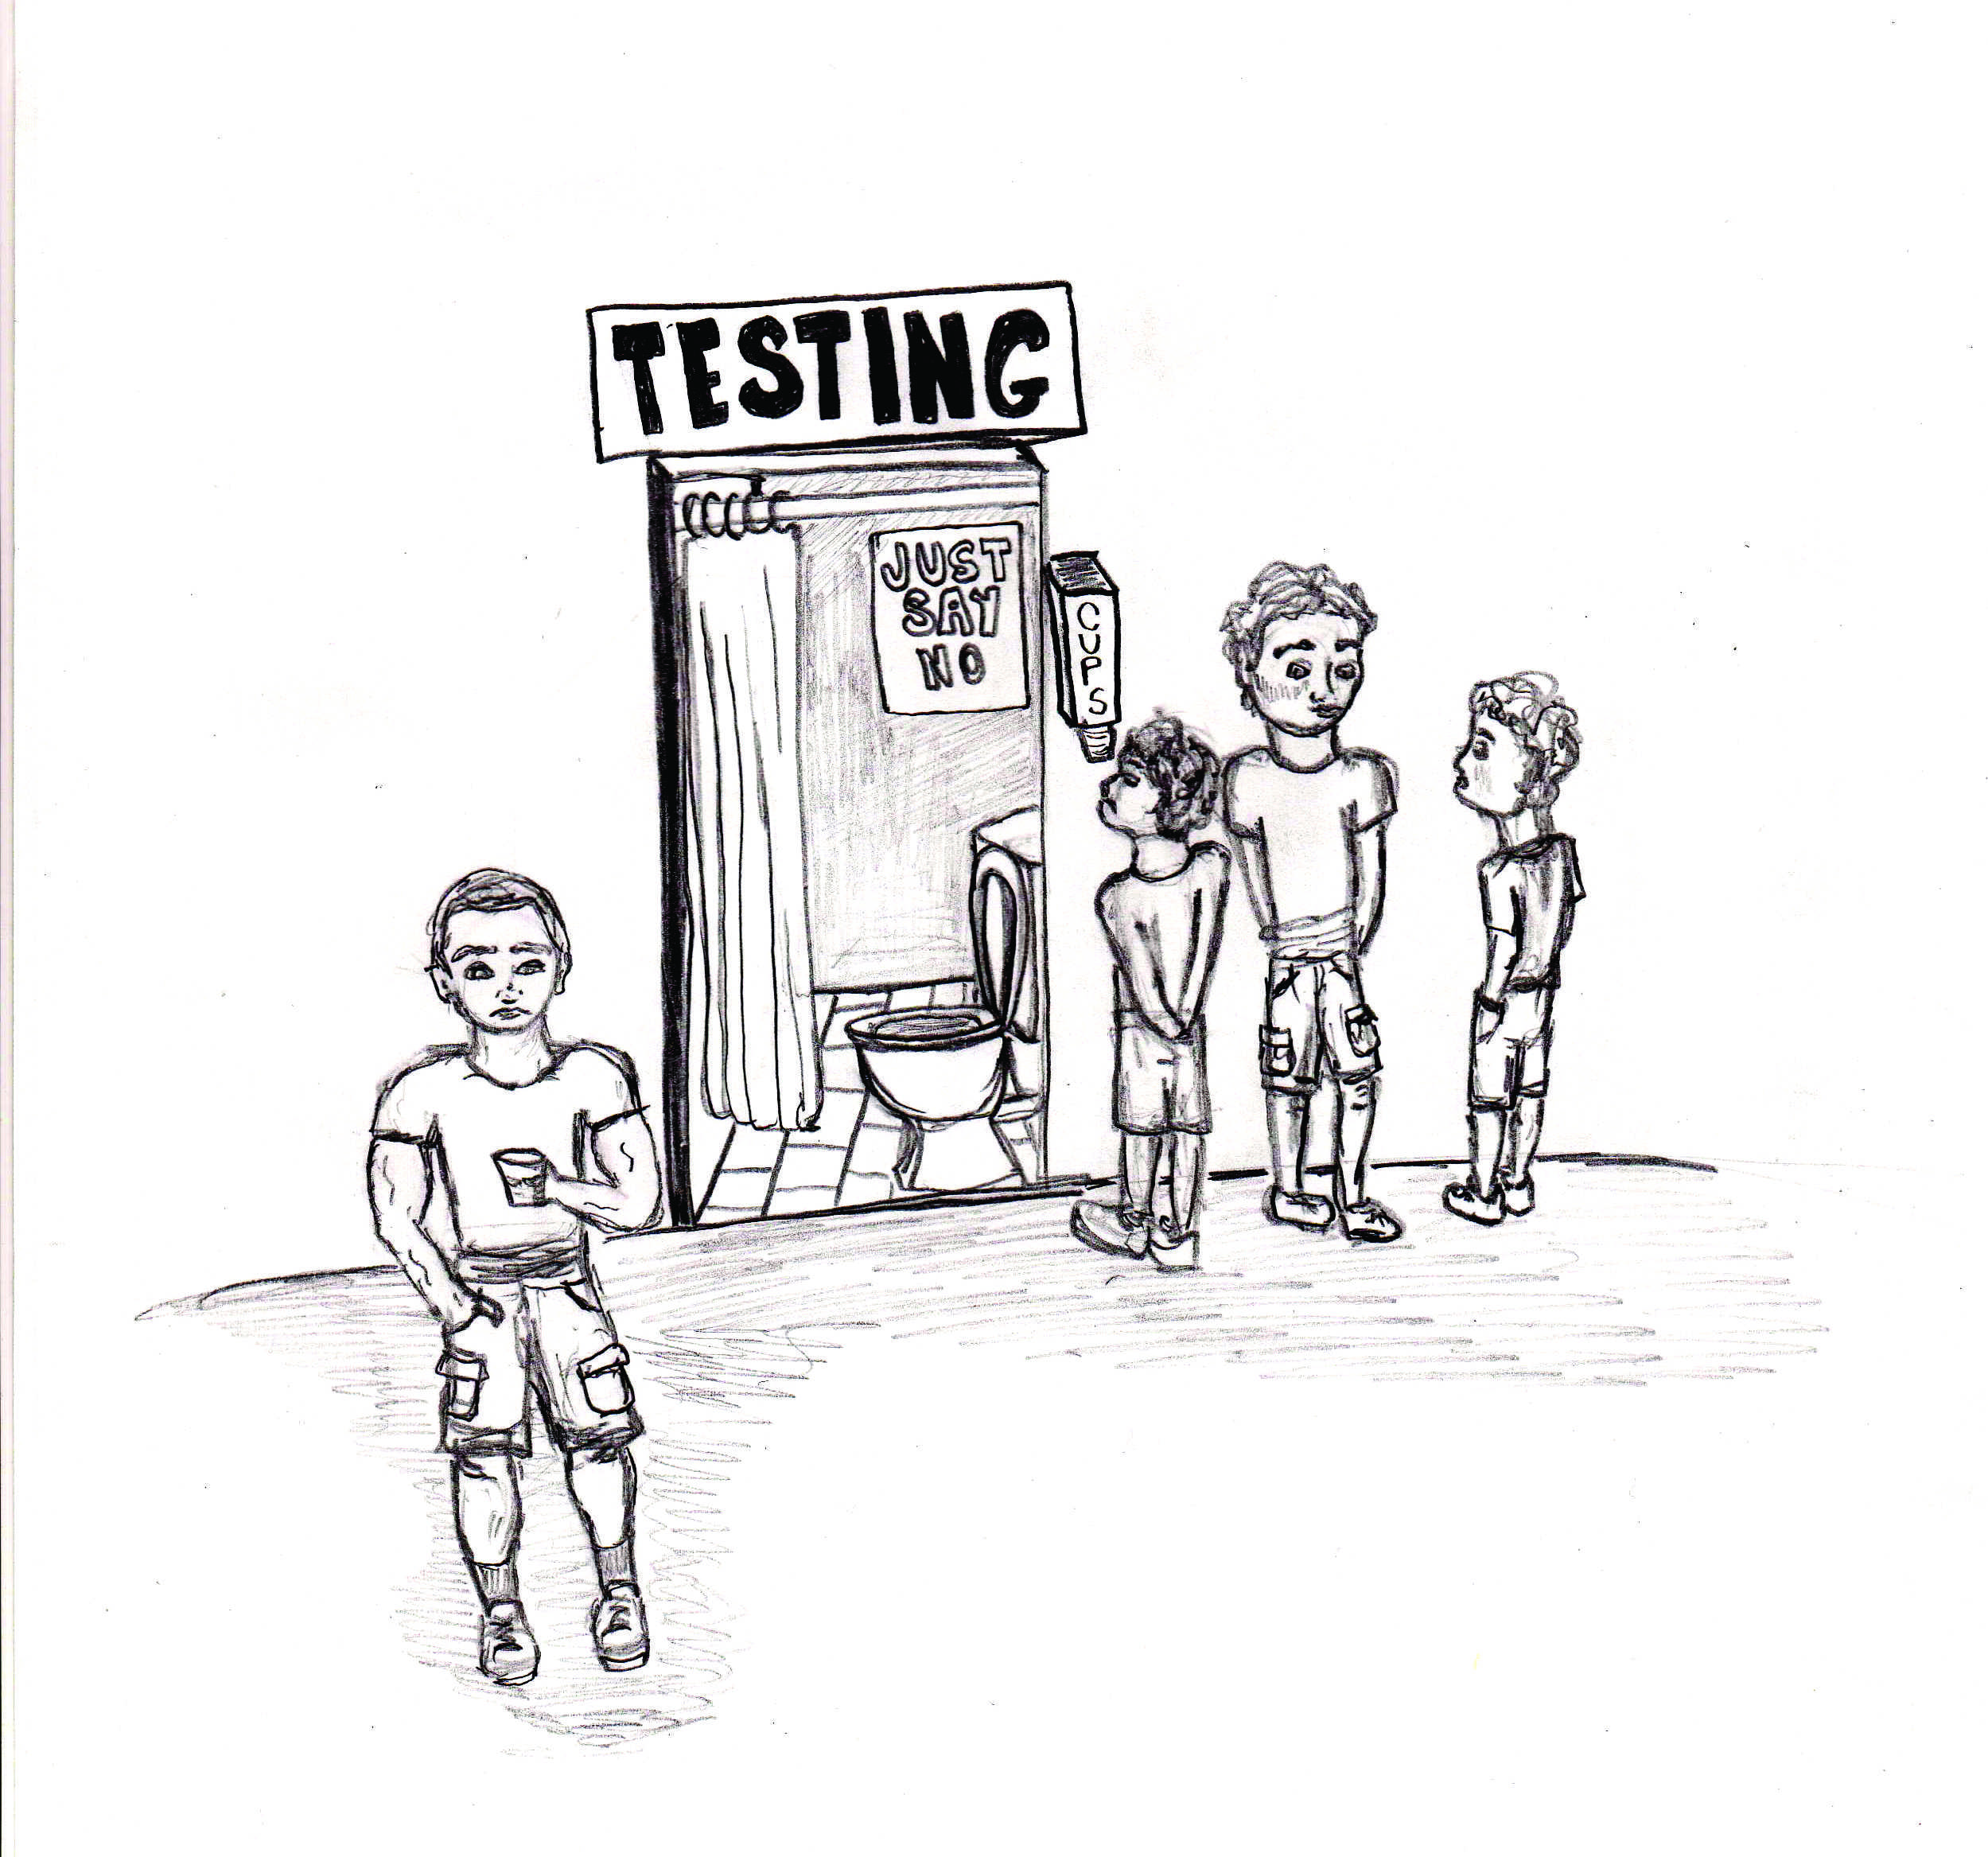 essay on drug testing highschool athletes Get an answer for 'random drug testing of high school athletes does more harm than goodi would love to hear your arguments and any sources anyone can suggest for debate on this topic' and find homework help for other drug testing questions at enotes.